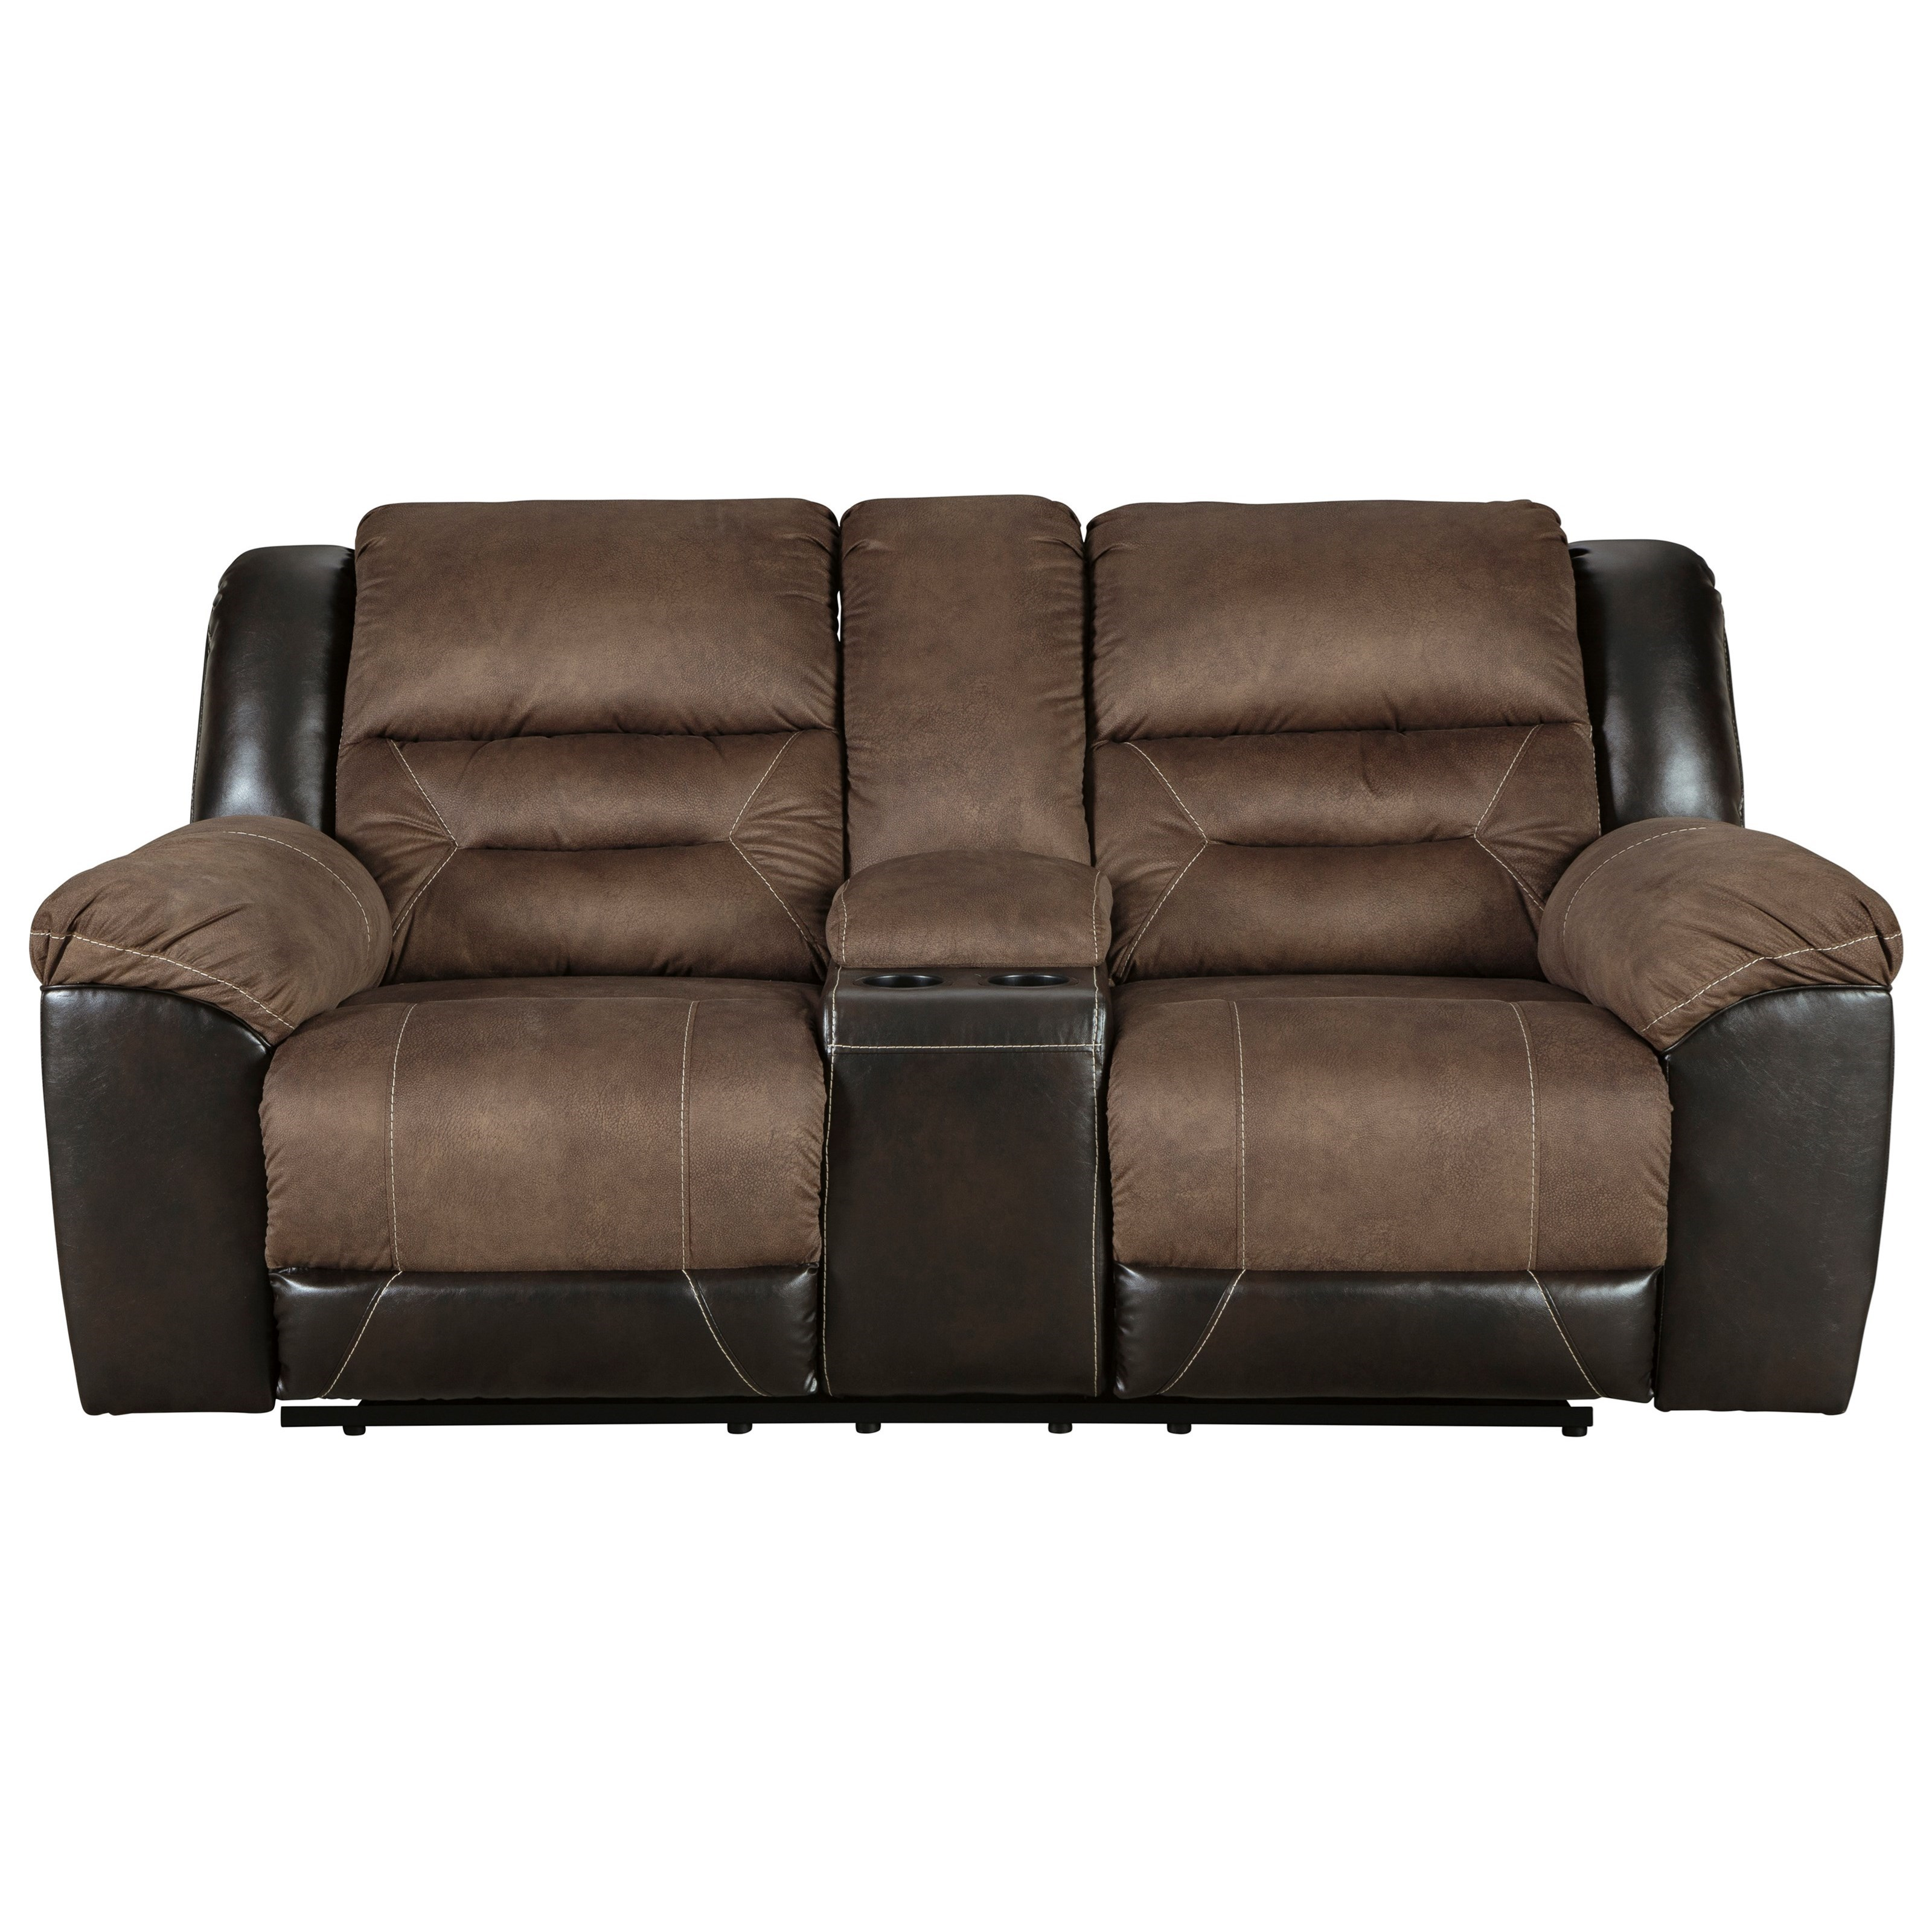 Earhart Reclining Loveseat with Console by Ashley (Signature Design) at Johnny Janosik